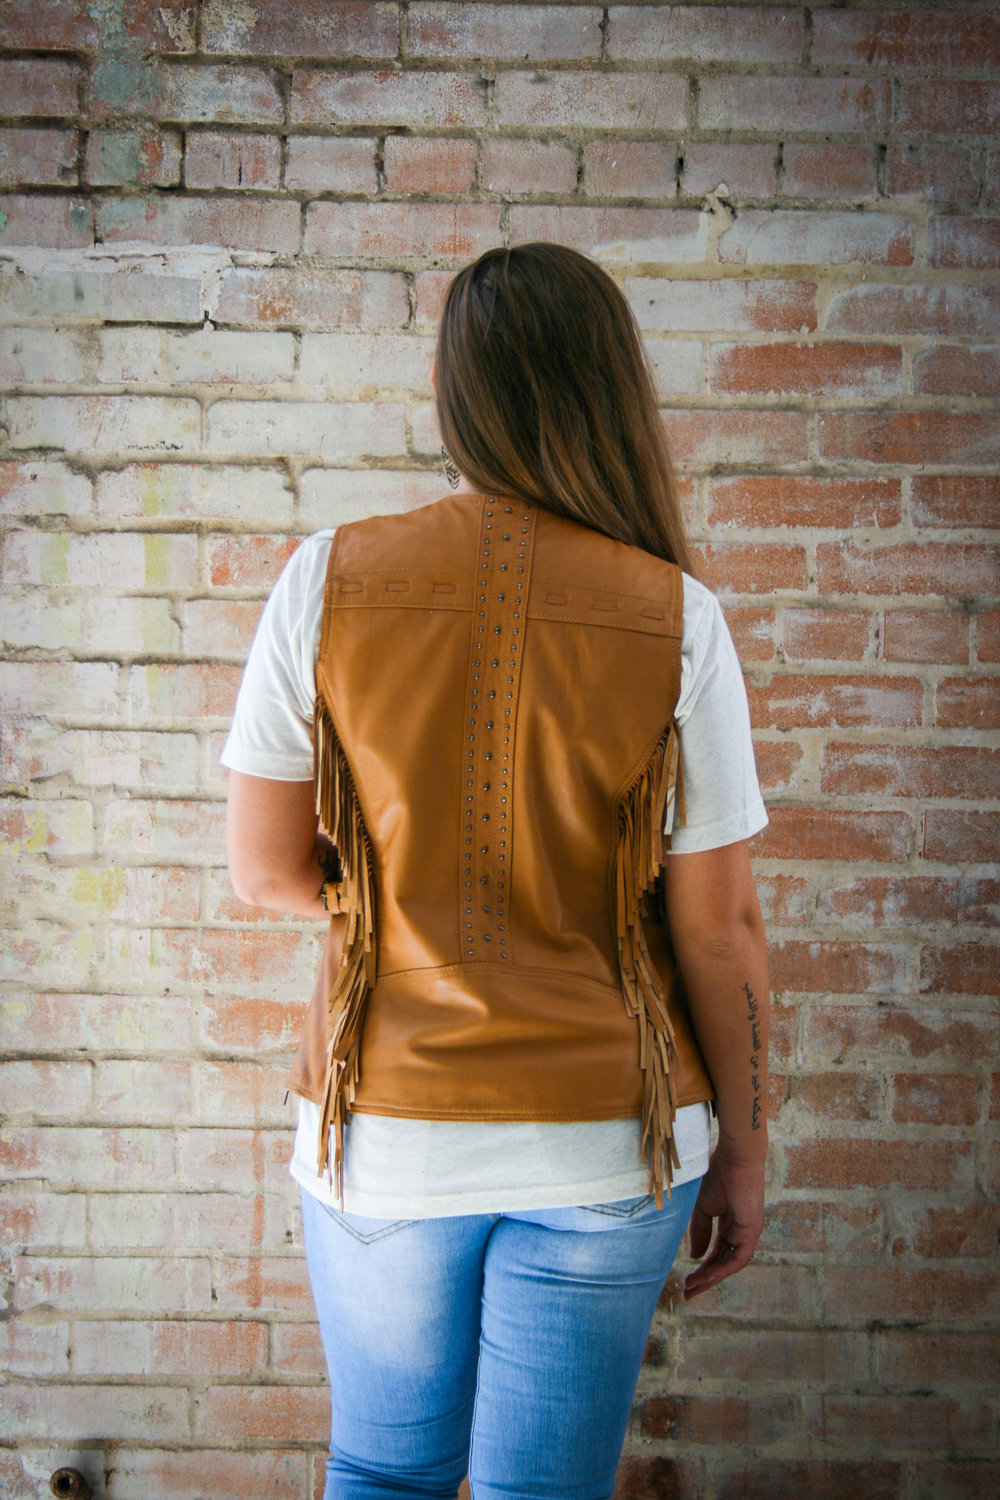 Brown Leather with Fringe Available in Black and Matching Leather Jacket XS-5X